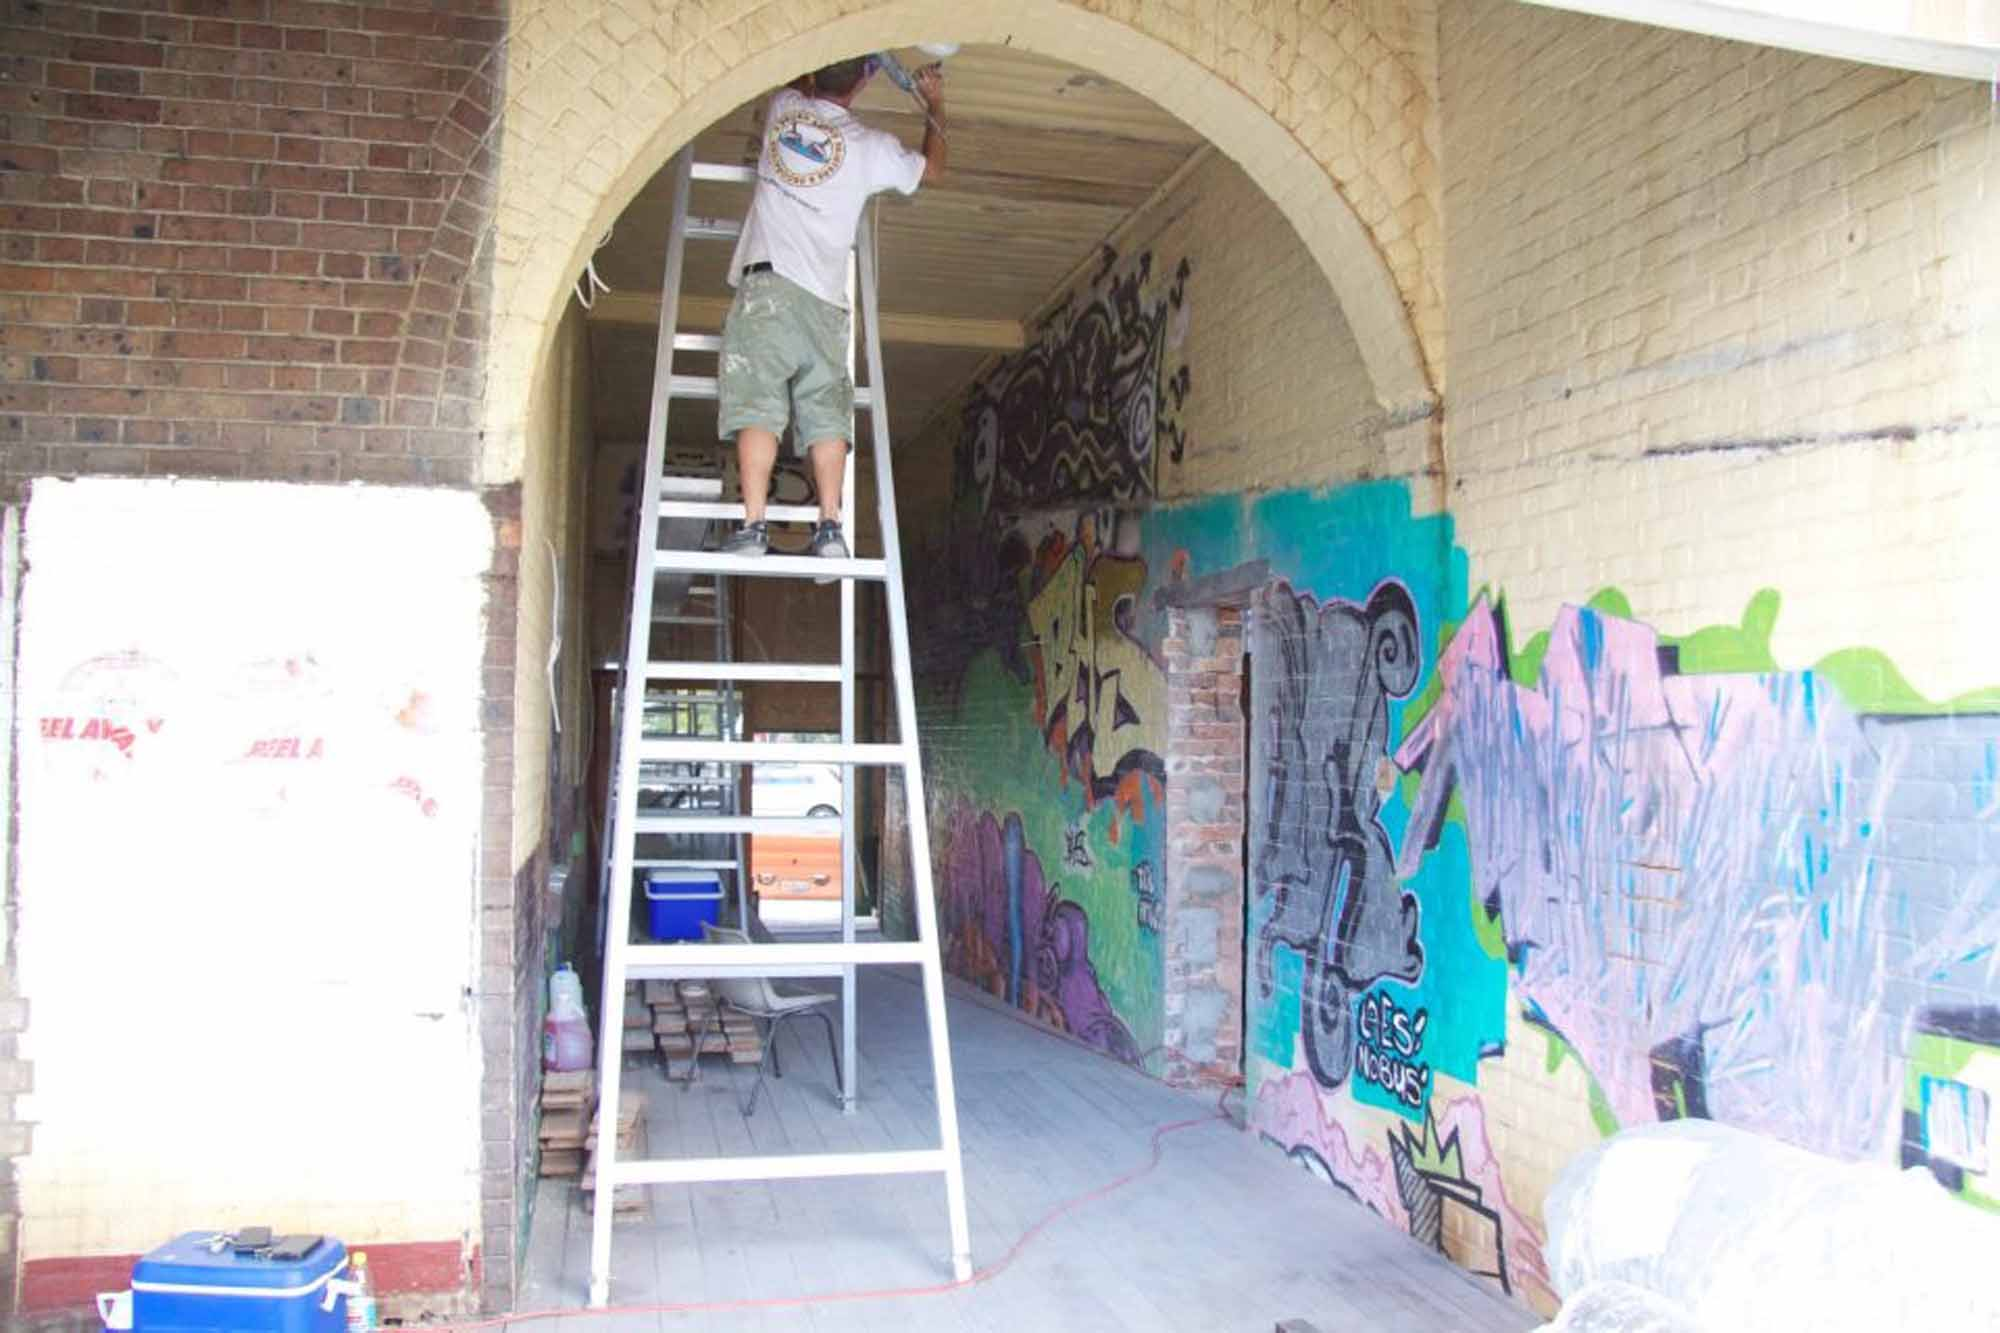 Ipswich Painting Project